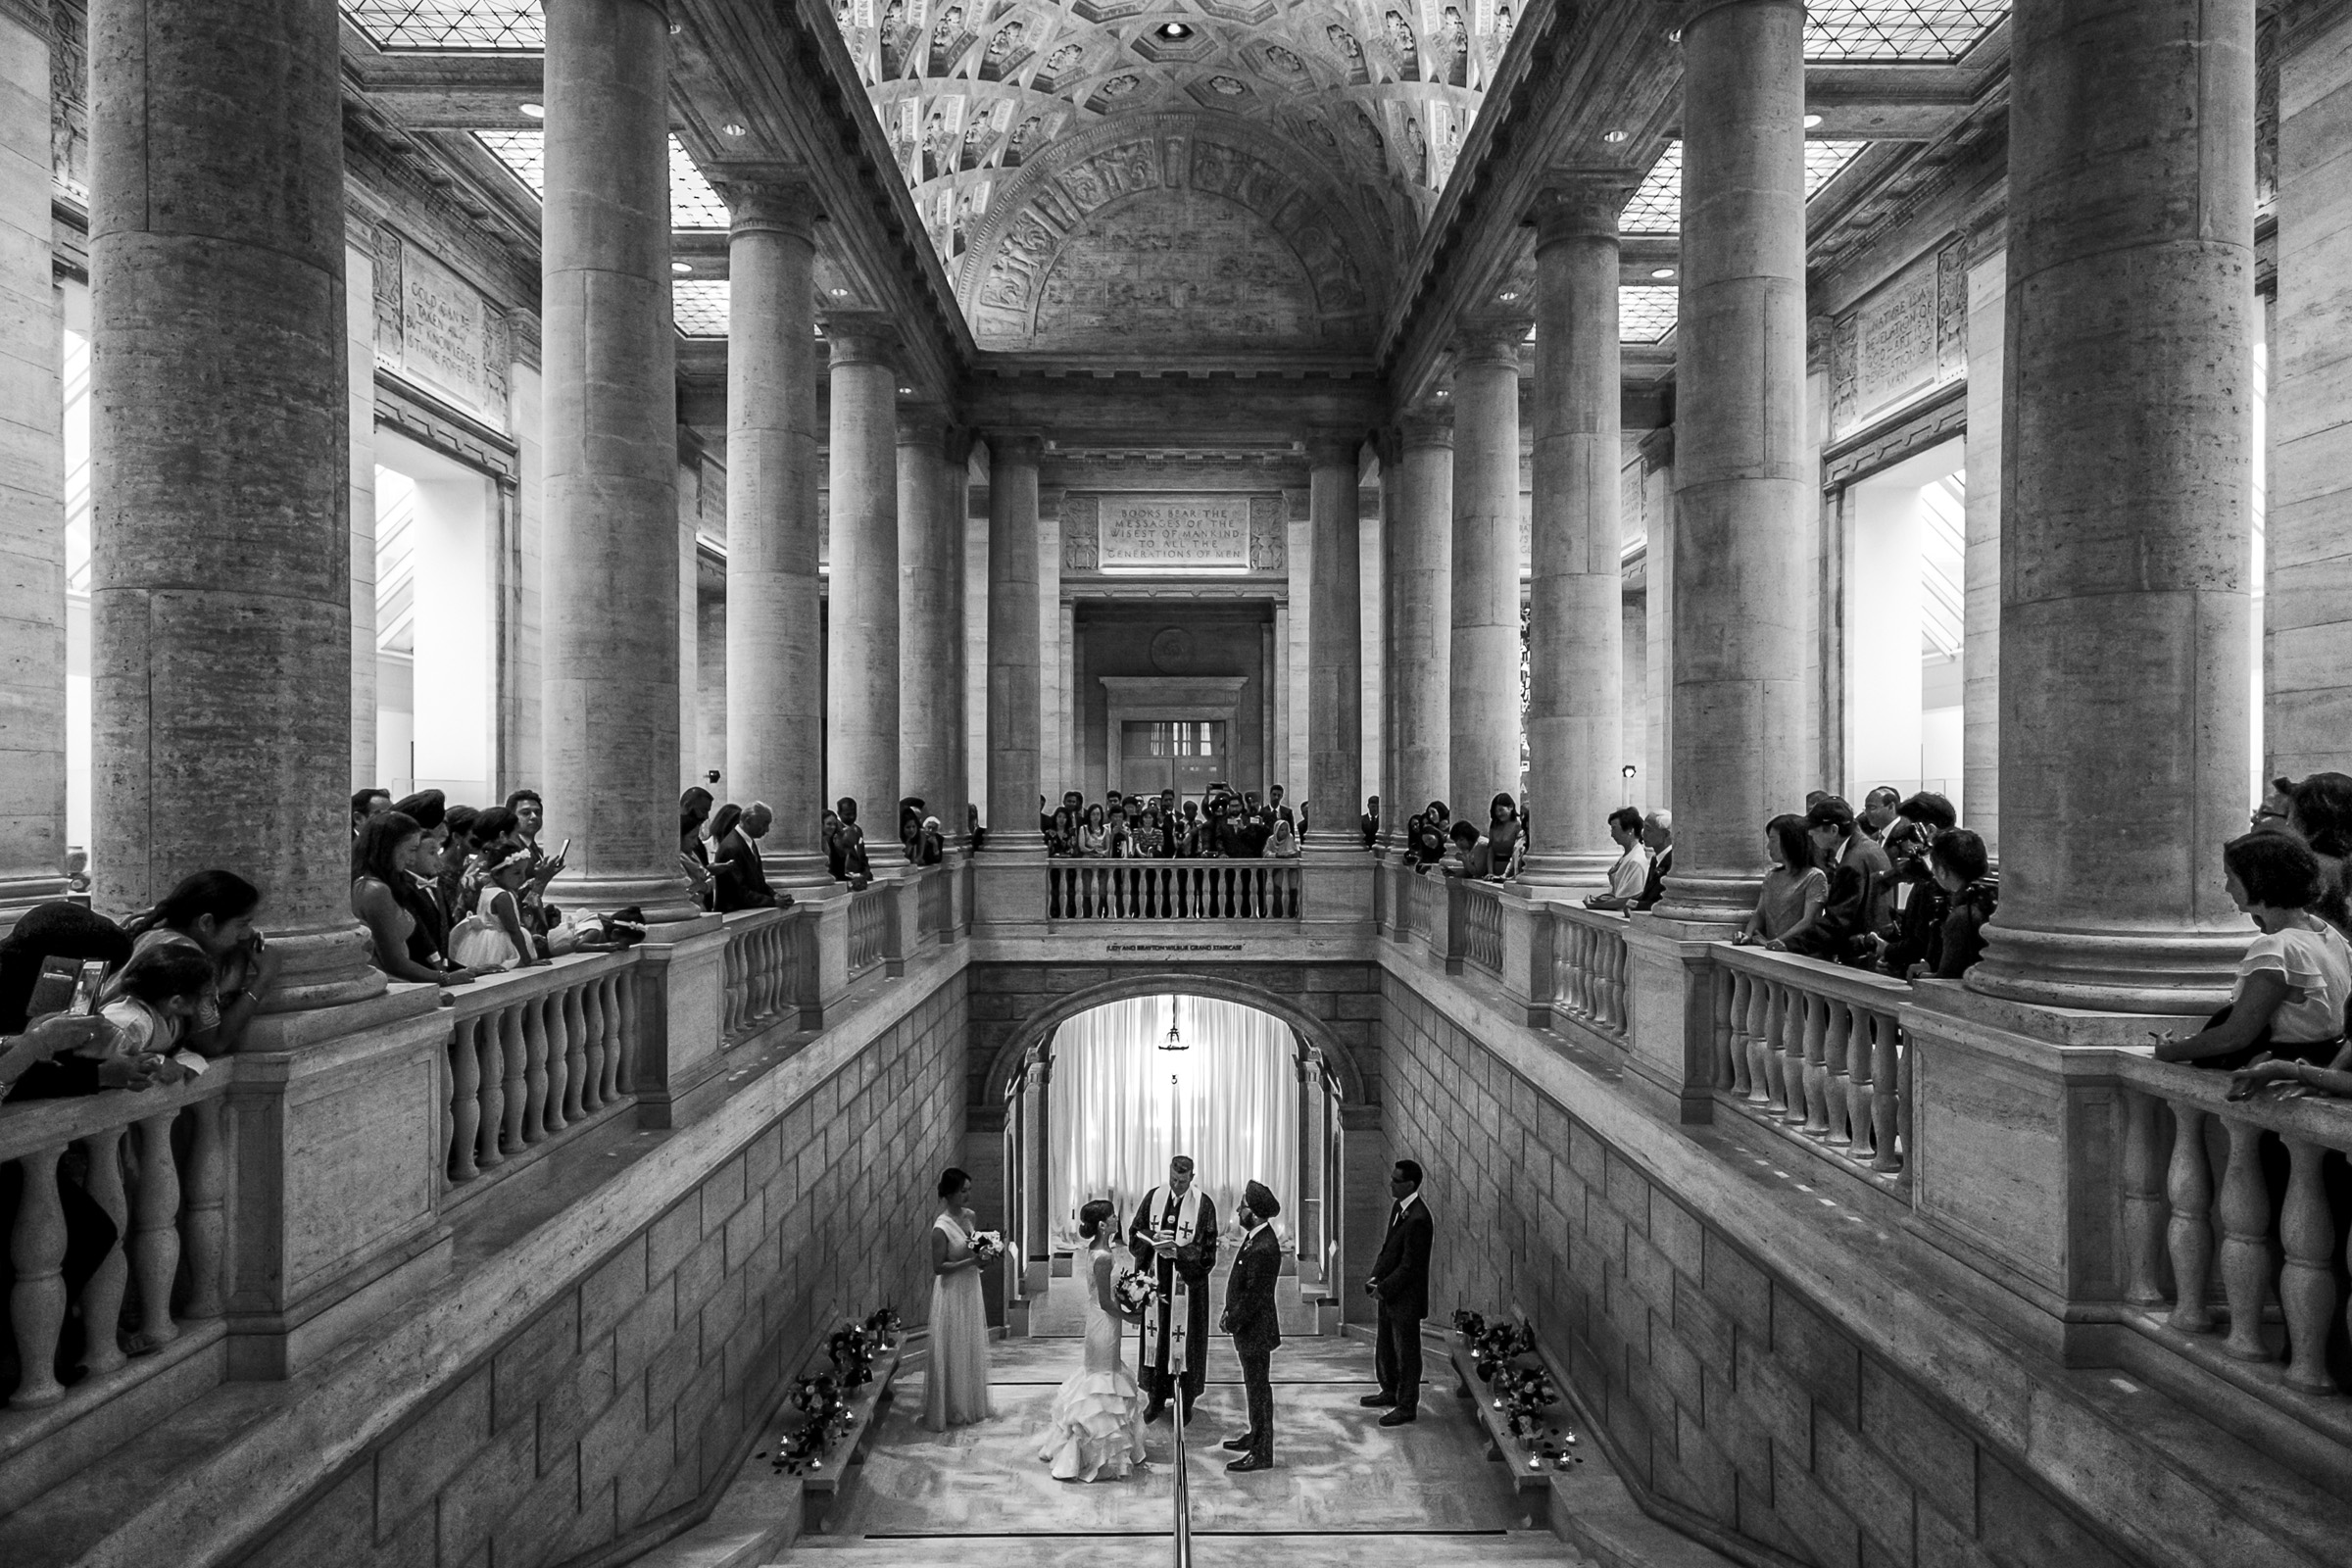 creative-composition-of-ceremony-in-columned-building-christophe-viseux-photography